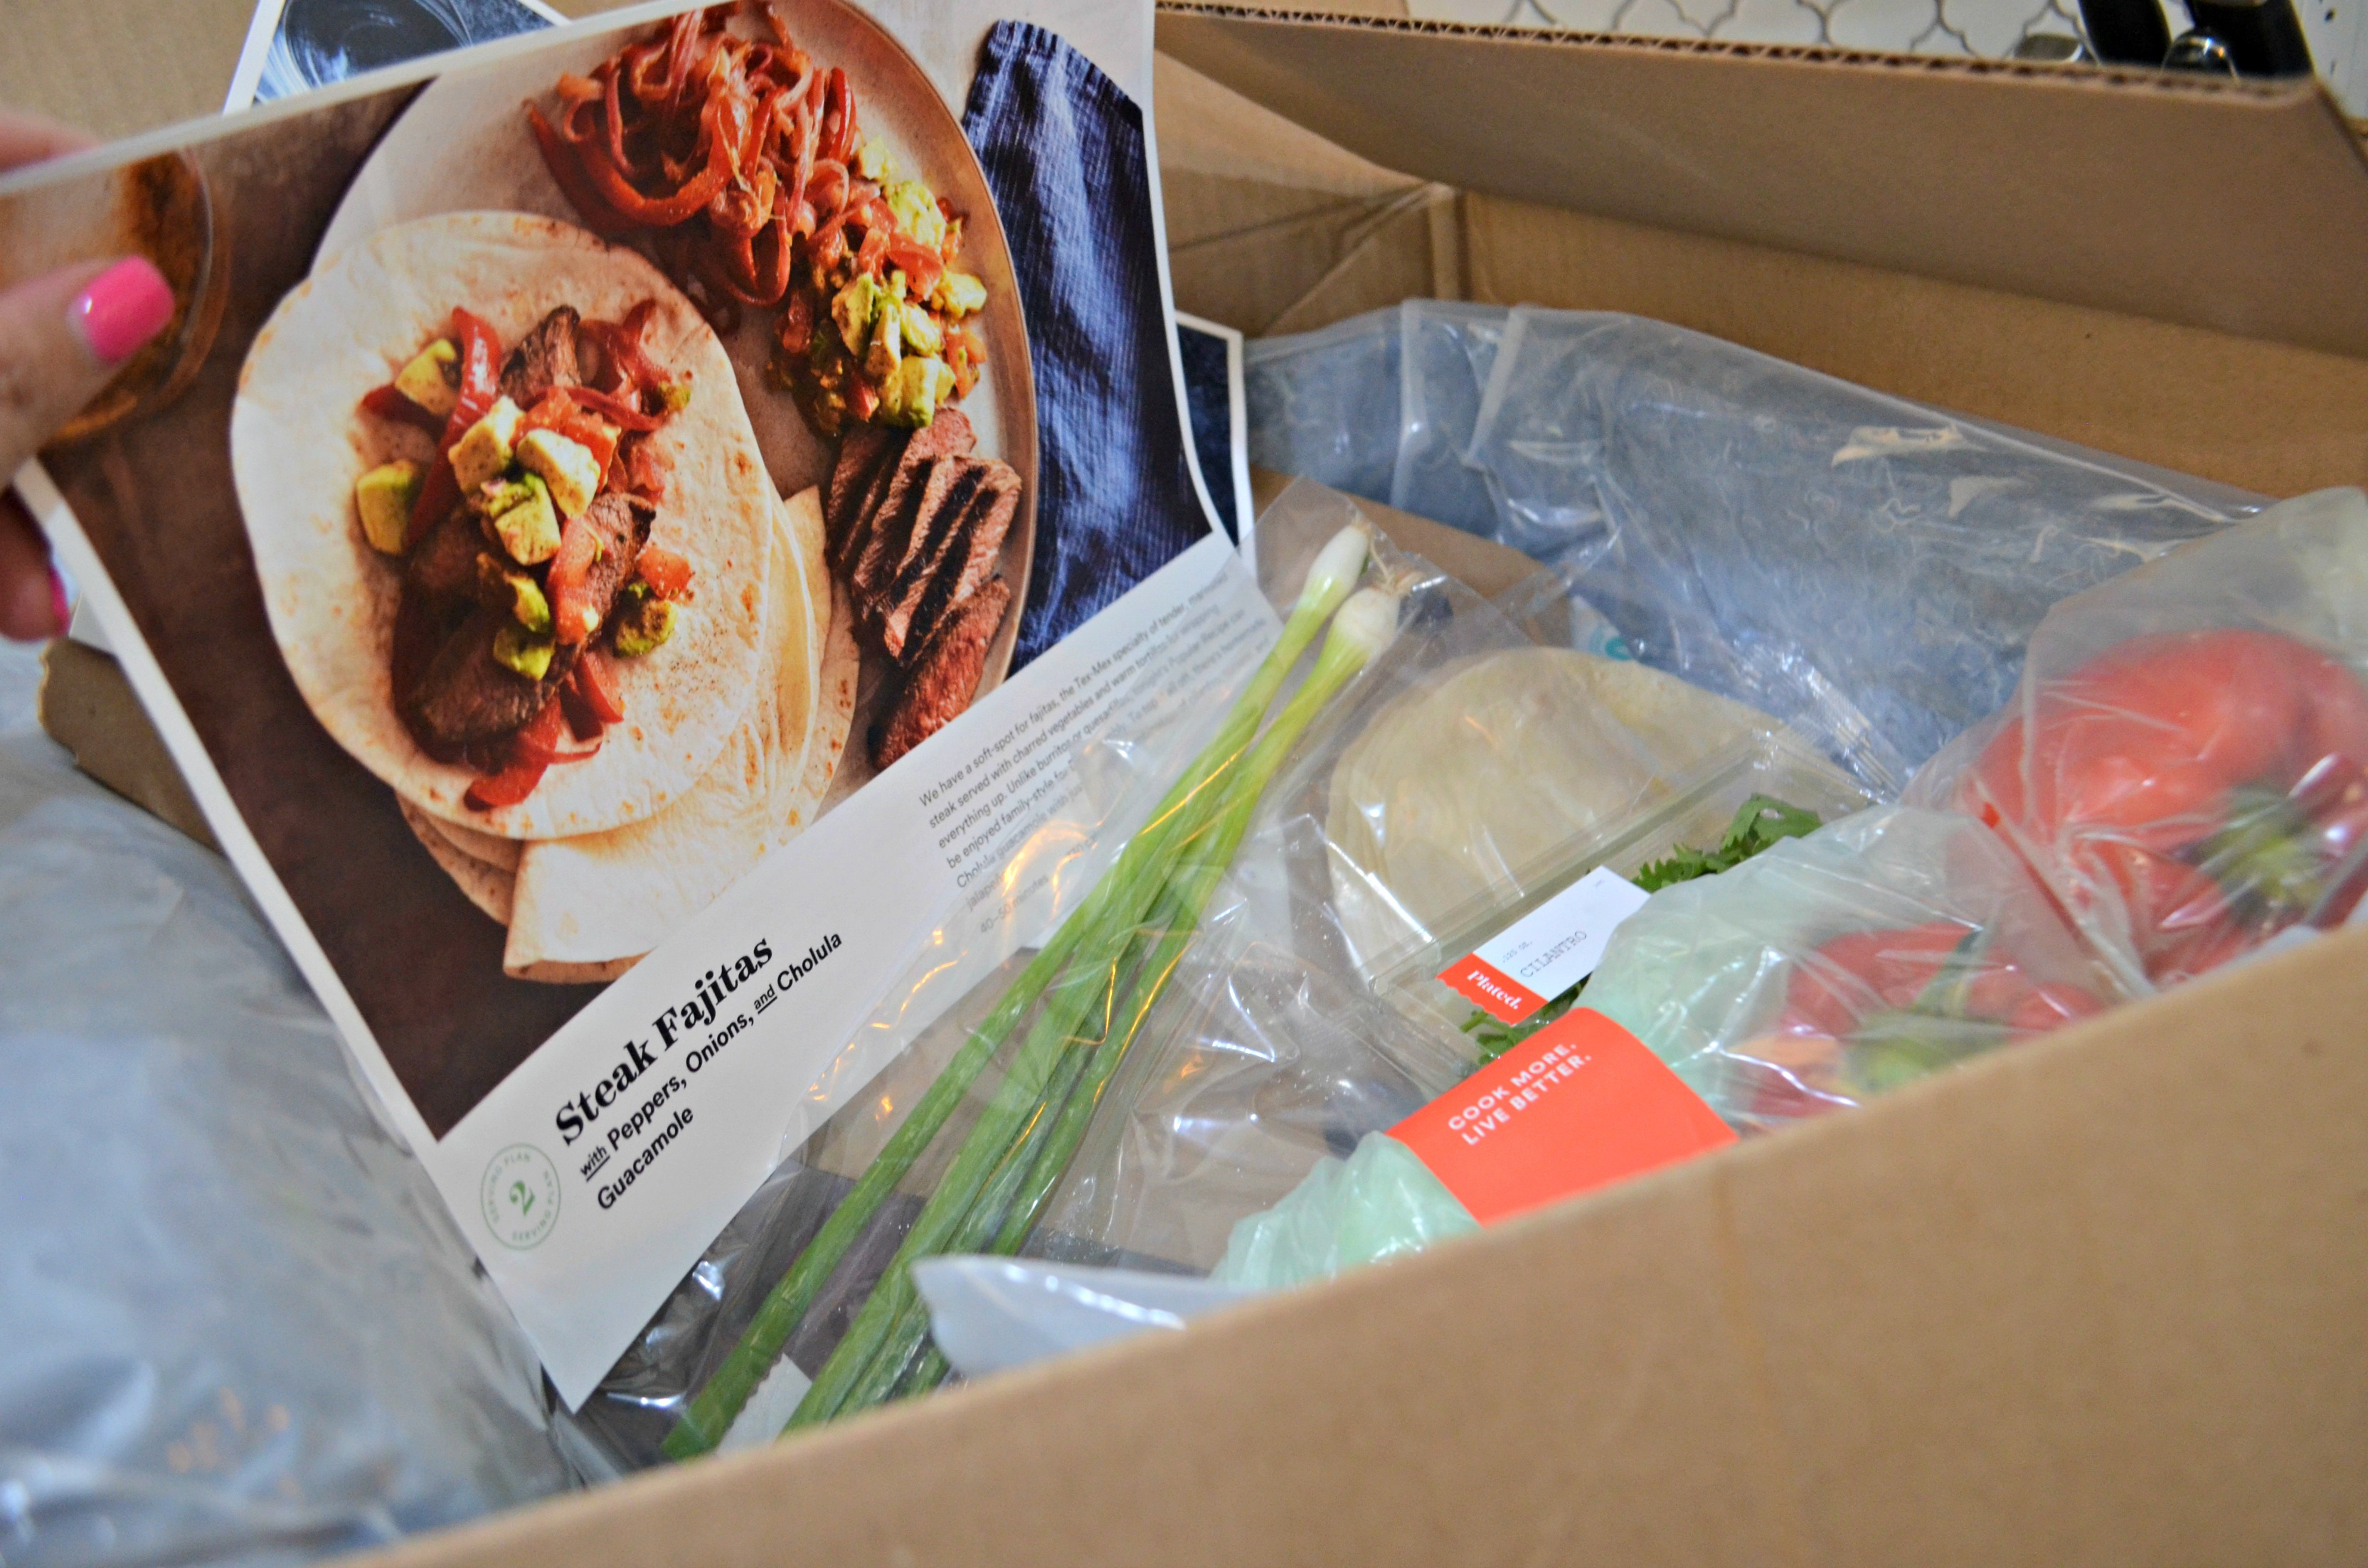 deal plated meal kit – Plated subscription box ingredients and recipe card for fajitas.